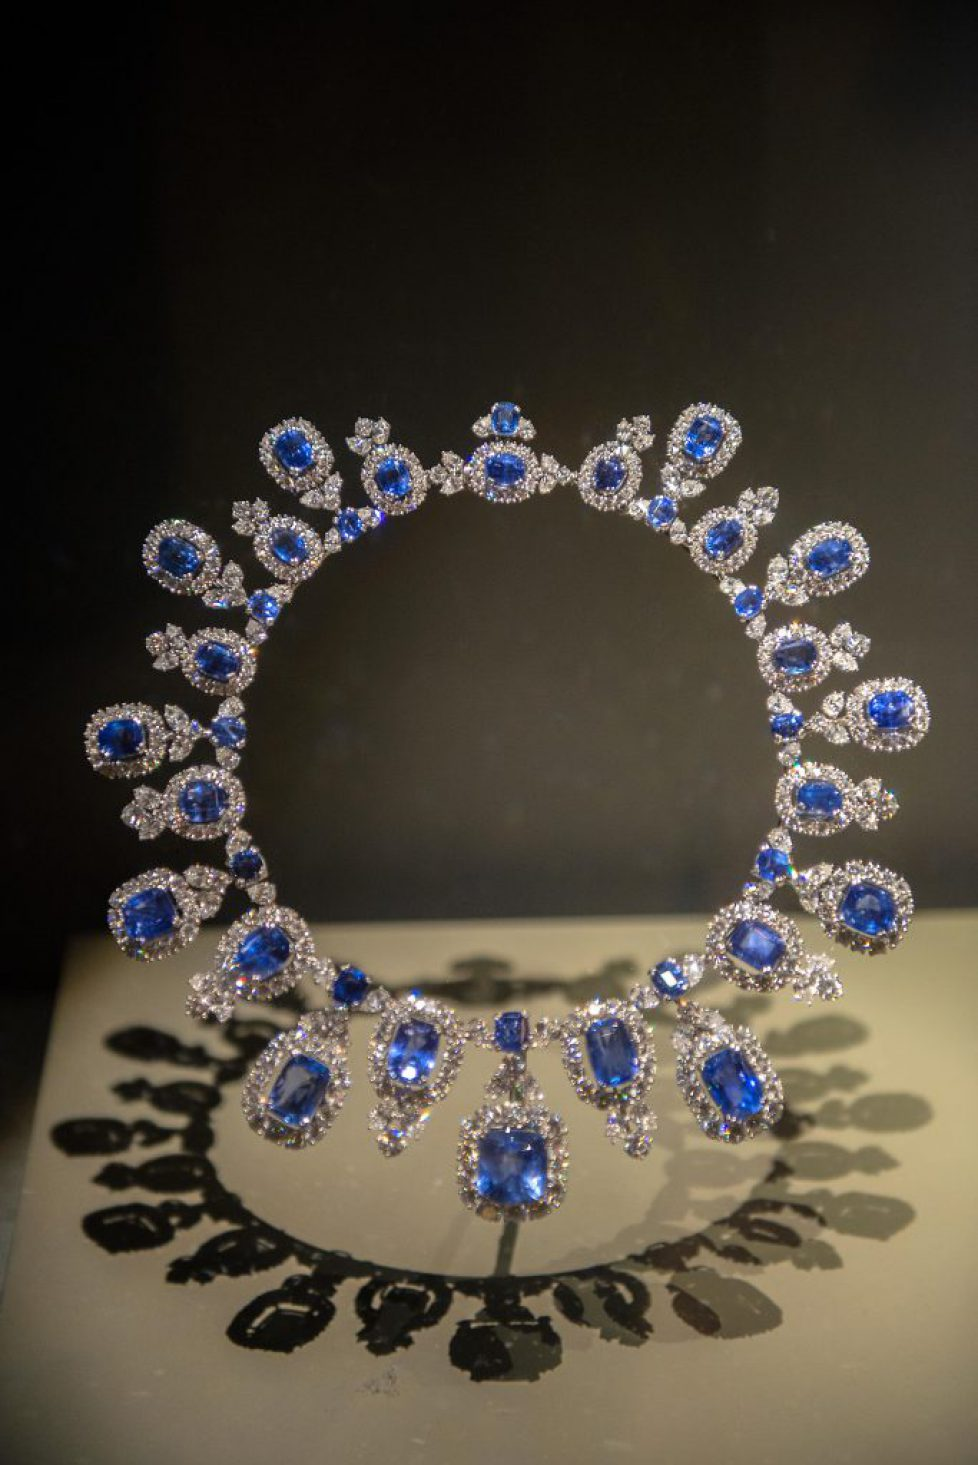 Hall diamond and sapphire necklace, Natural History Museum, Washington, DC, USA (Editorial Usage Only)